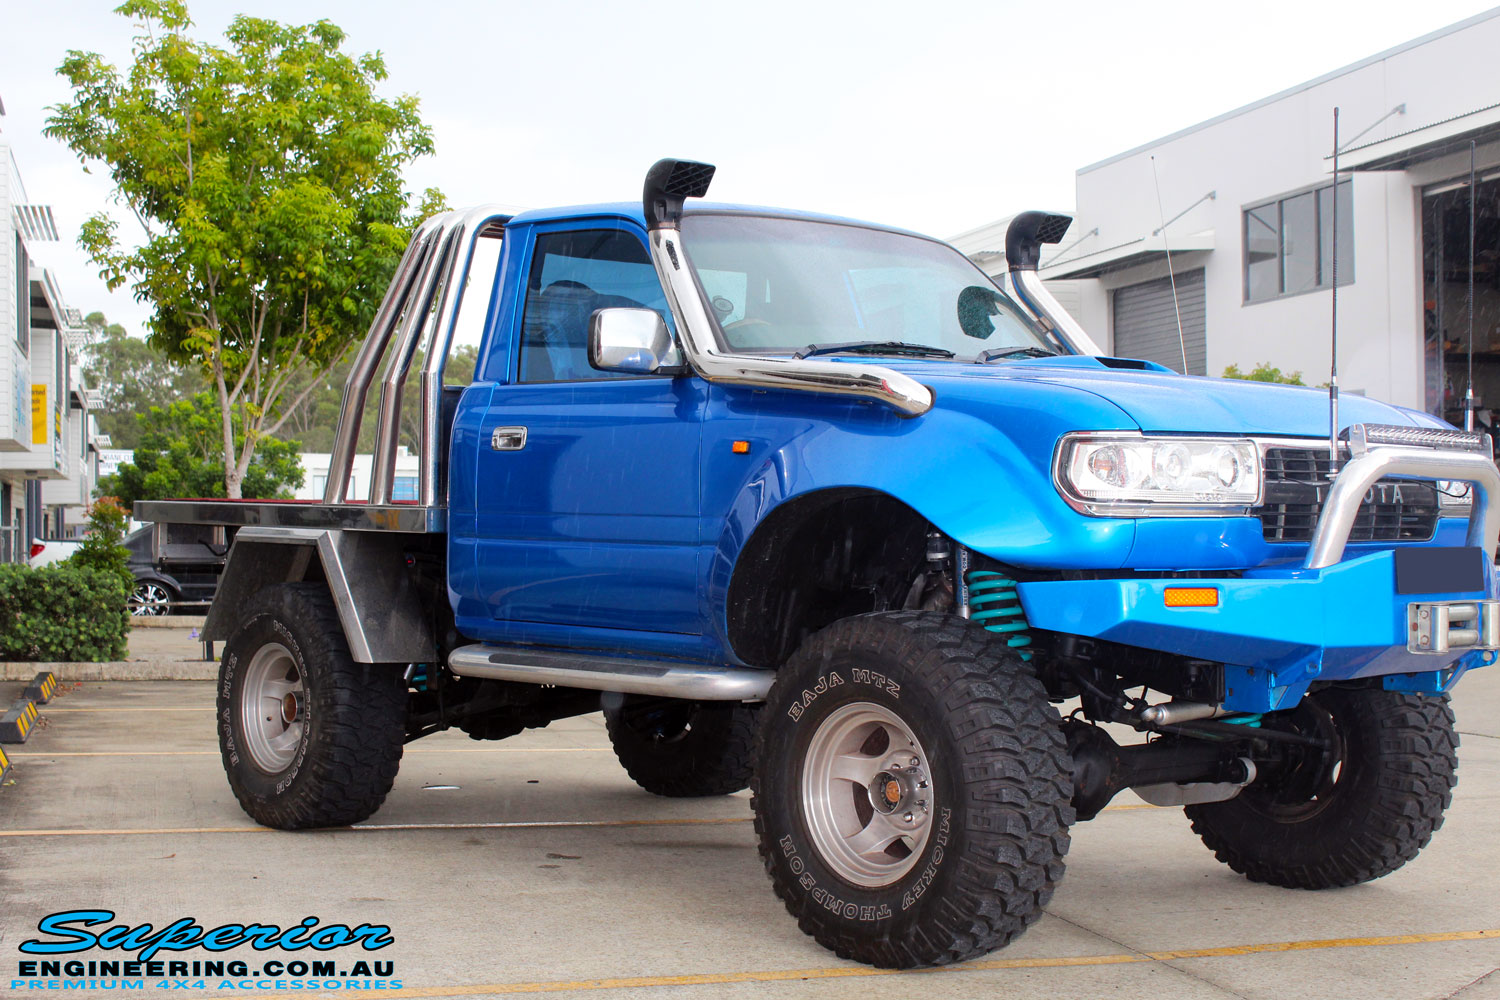 "Left front side view of a Blue Toyota 80 Series Landcruiser Ute Chop after fitment of a Airbag Man 4"" Inch Coil Air Helper Kit"